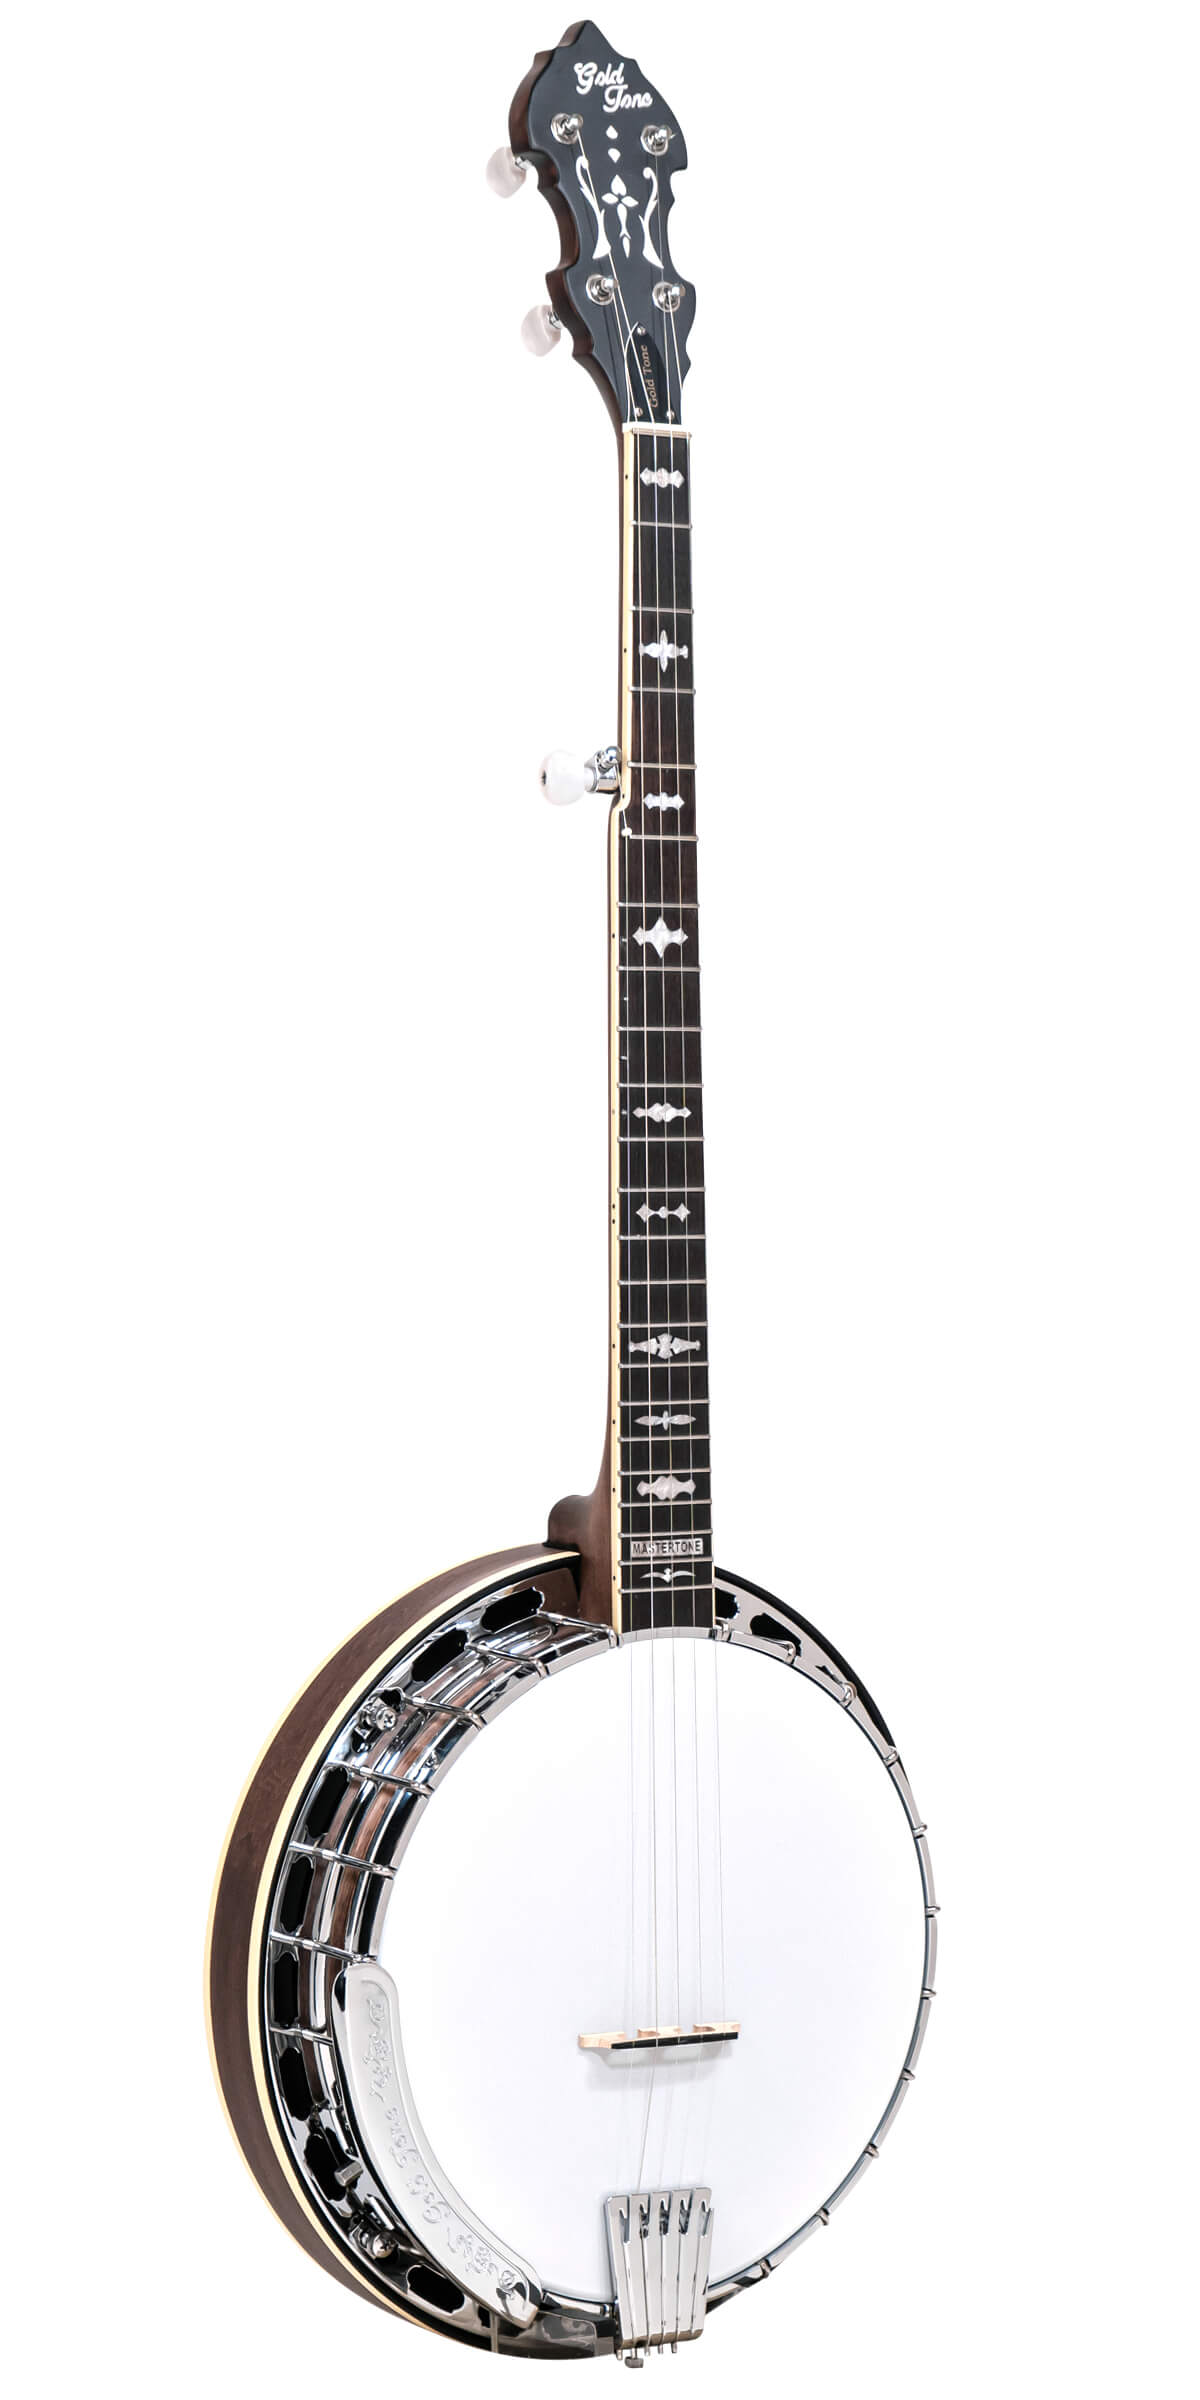 OB-150RF: Orange Blossom Radiused Banjo